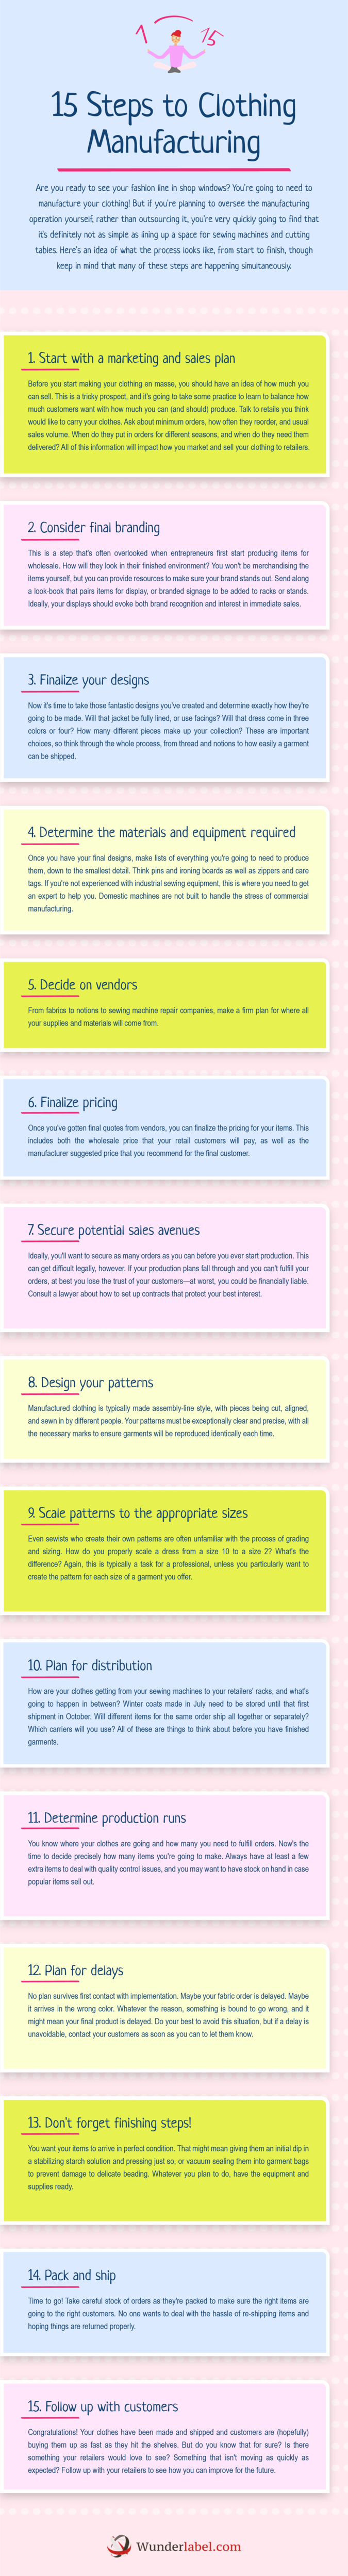 15 Steps to Clothing Manufacturing [Infographic]